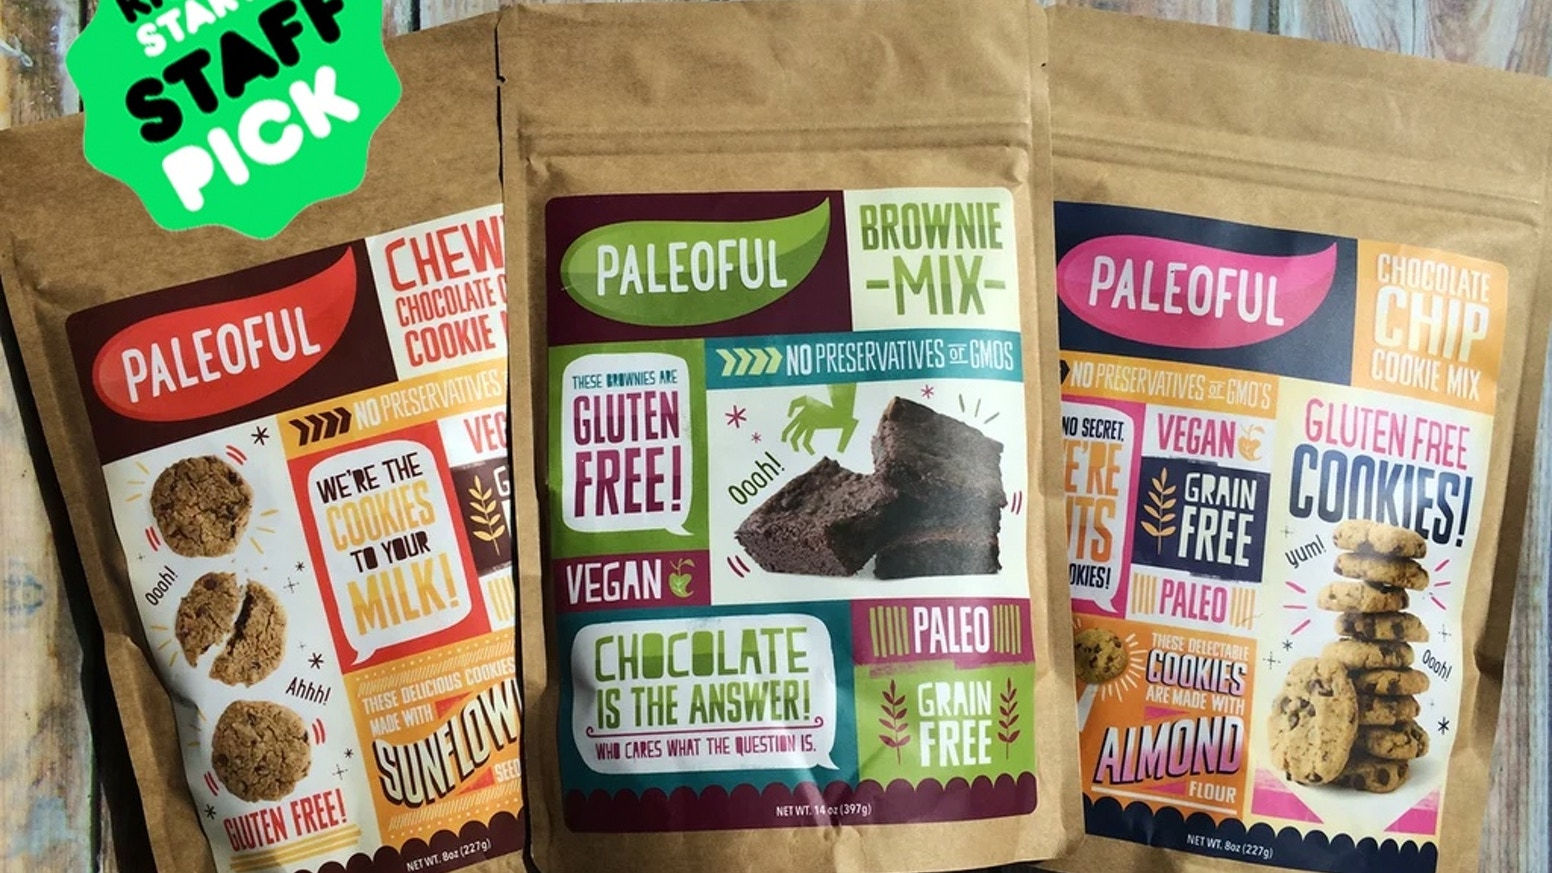 Paleo-friendly baking mixes that are gluten-free, grain-free, vegan (egg/dairy-free), soy-free, preservative-free, and non-GMO.